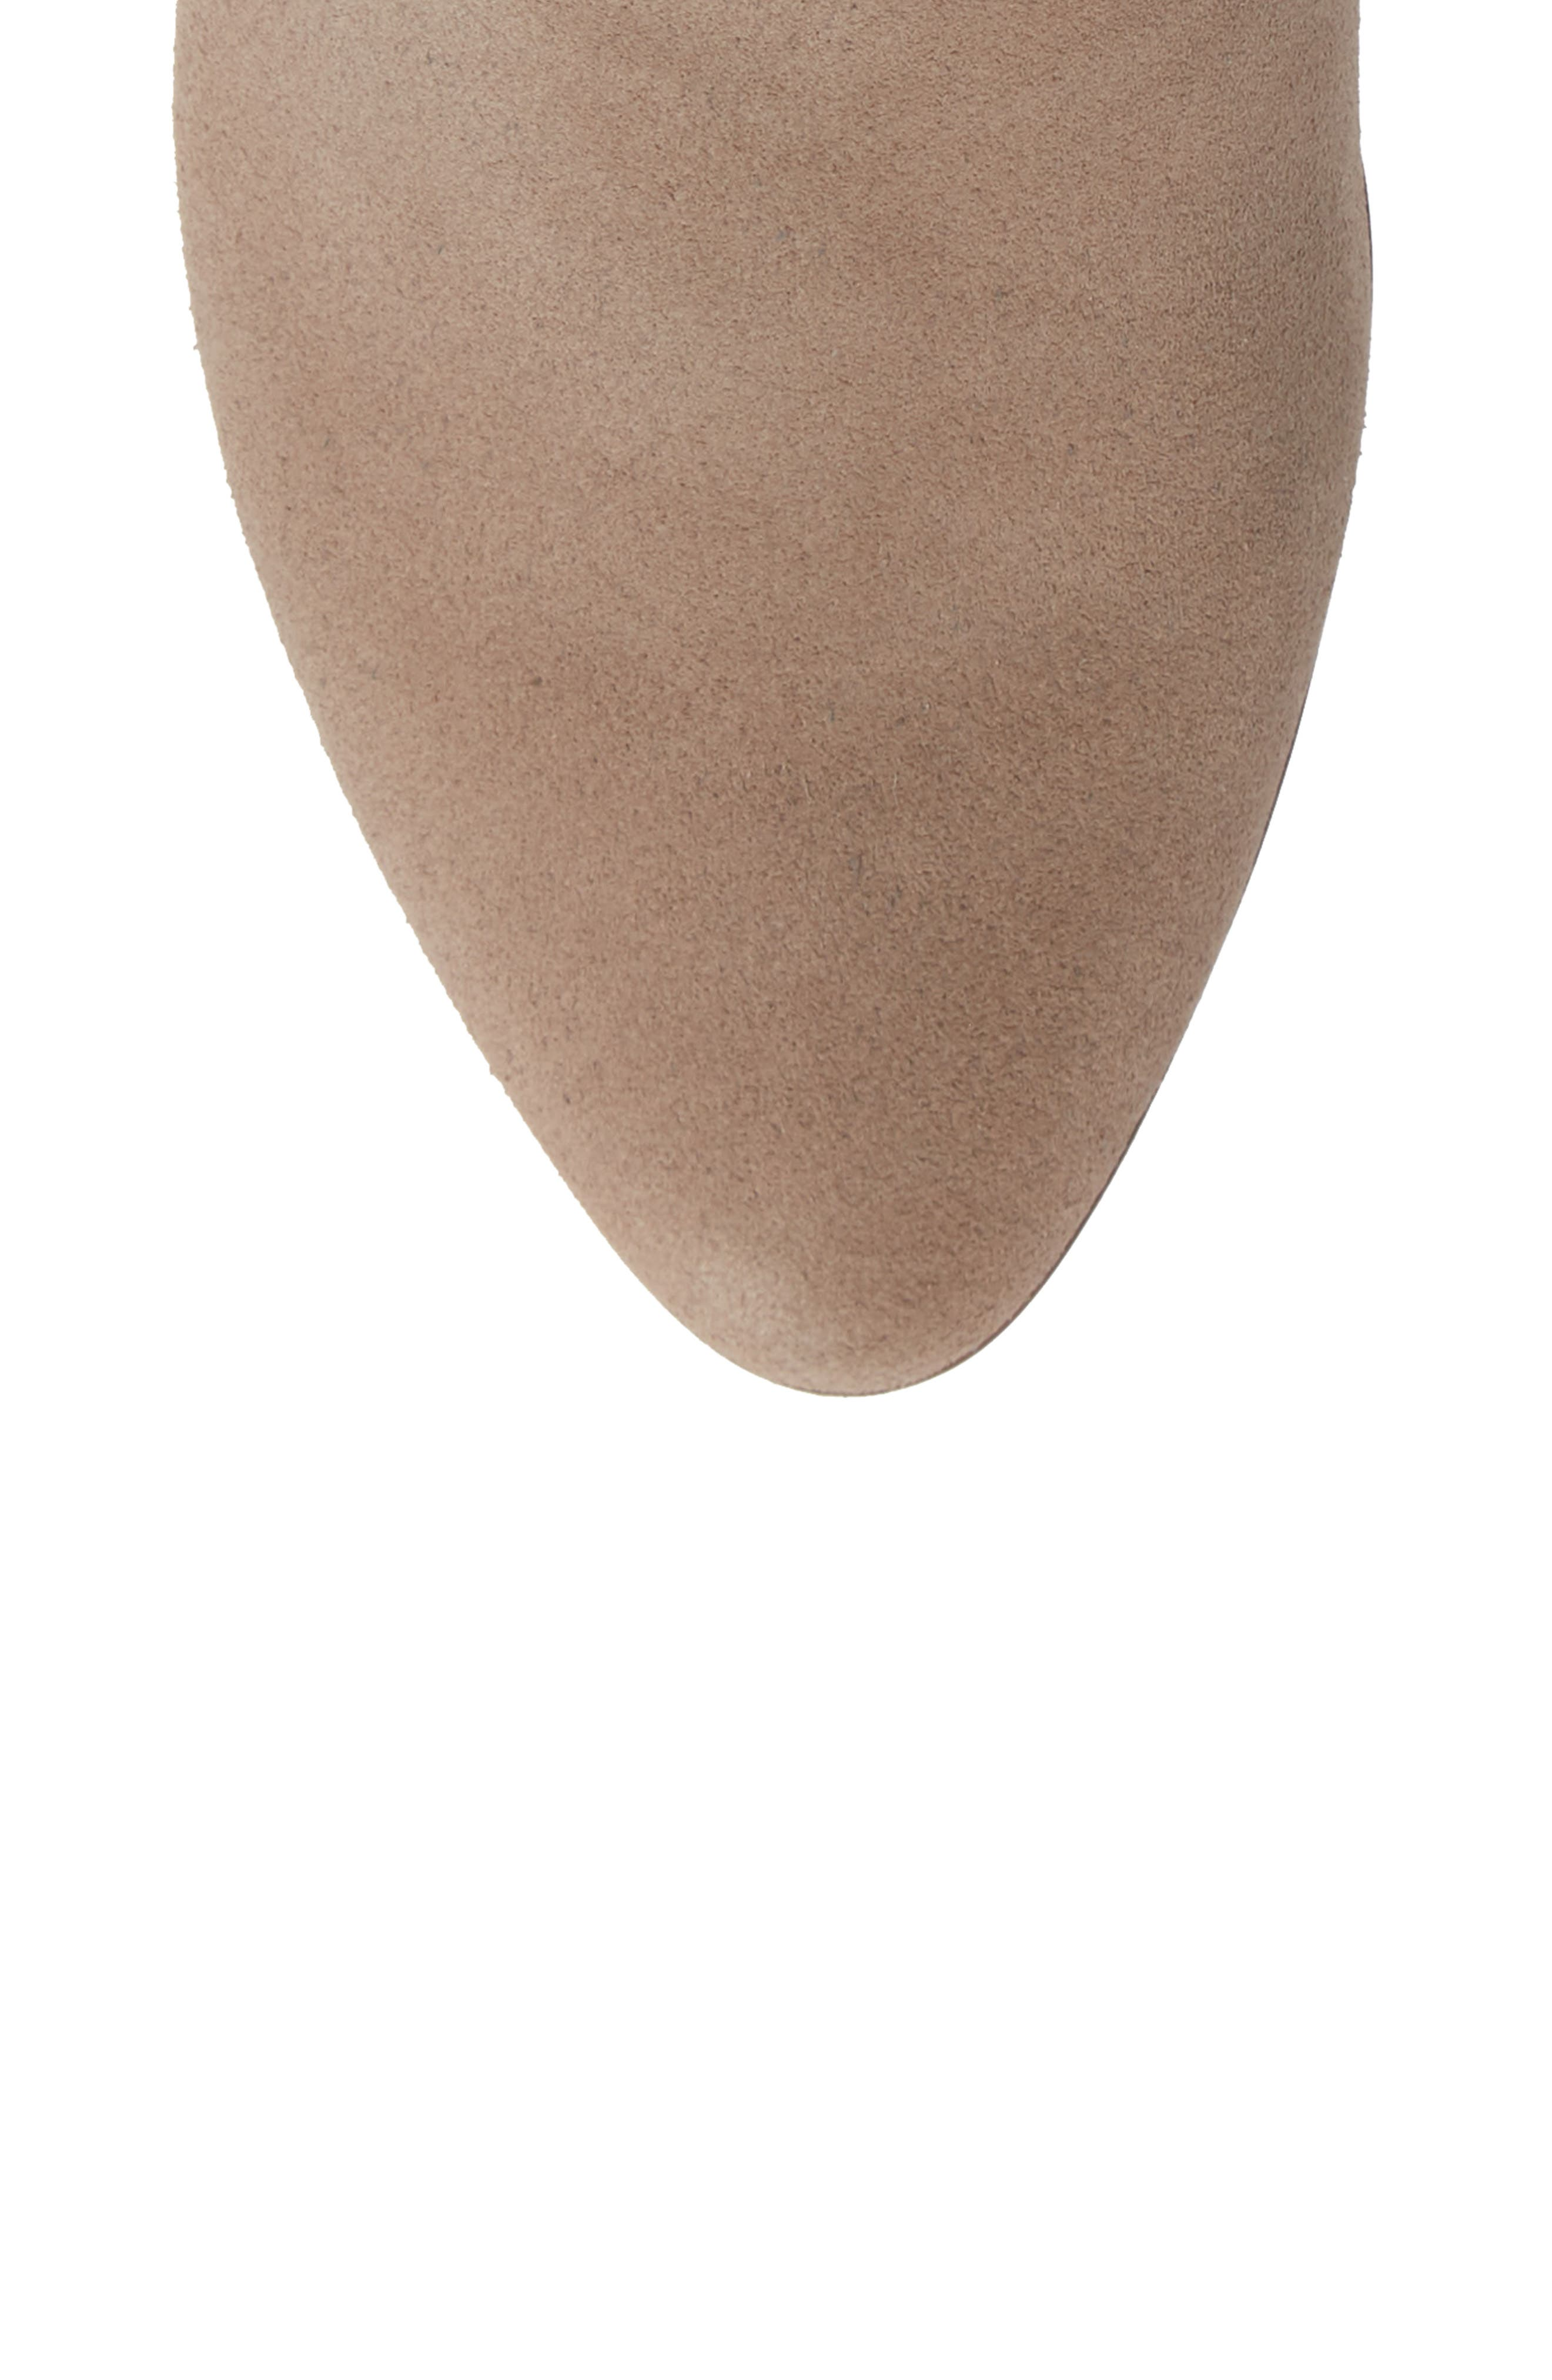 SOLE SOCIETY, Rhilynn Bootie, Alternate thumbnail 5, color, FALL TAUPE SUEDE